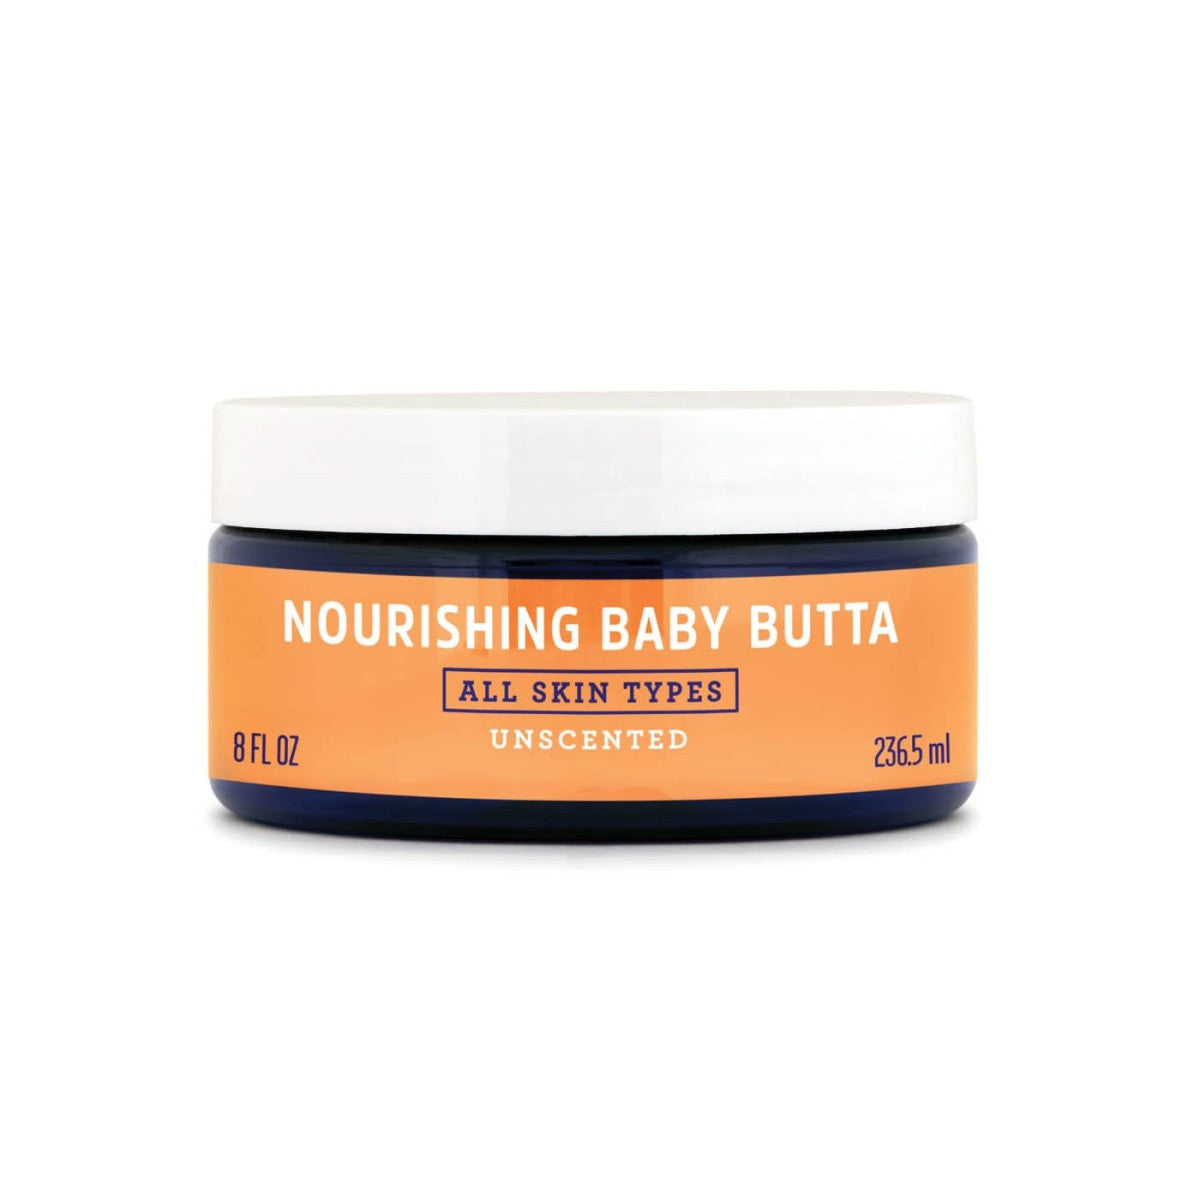 a jar of FATCO Nourishing Baby Butta paleo tallow balm 8oz Jar Side view against a white background